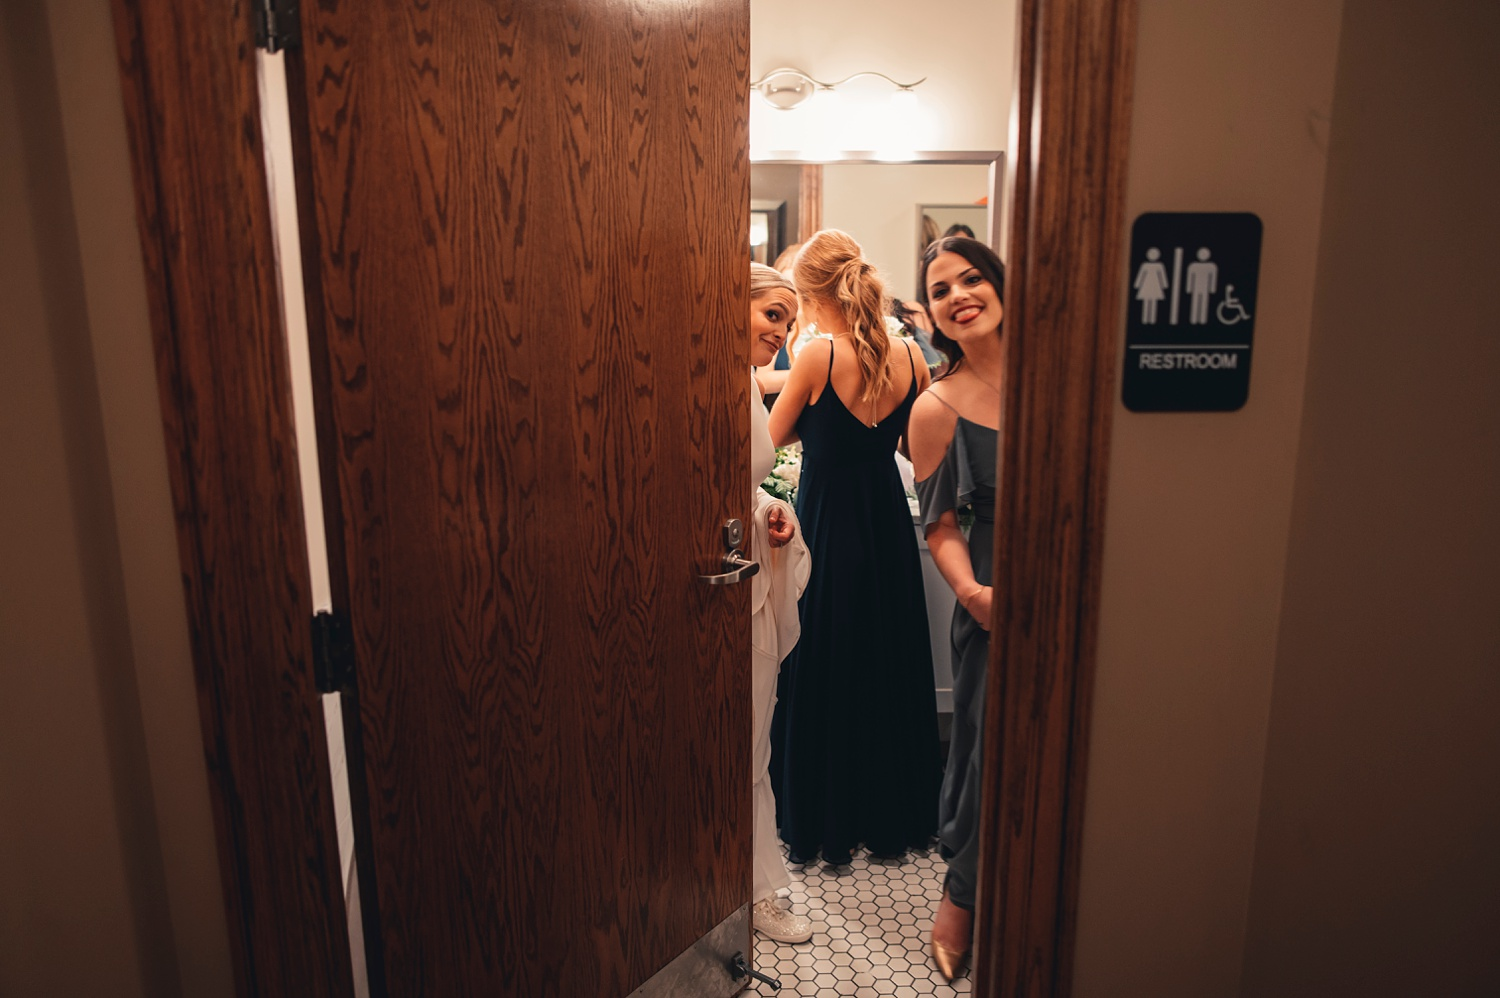 Salvatore's Chicago Wedding - St. Josaphat Catholic Church, bride and bridesmaids getting ready in a bathroom